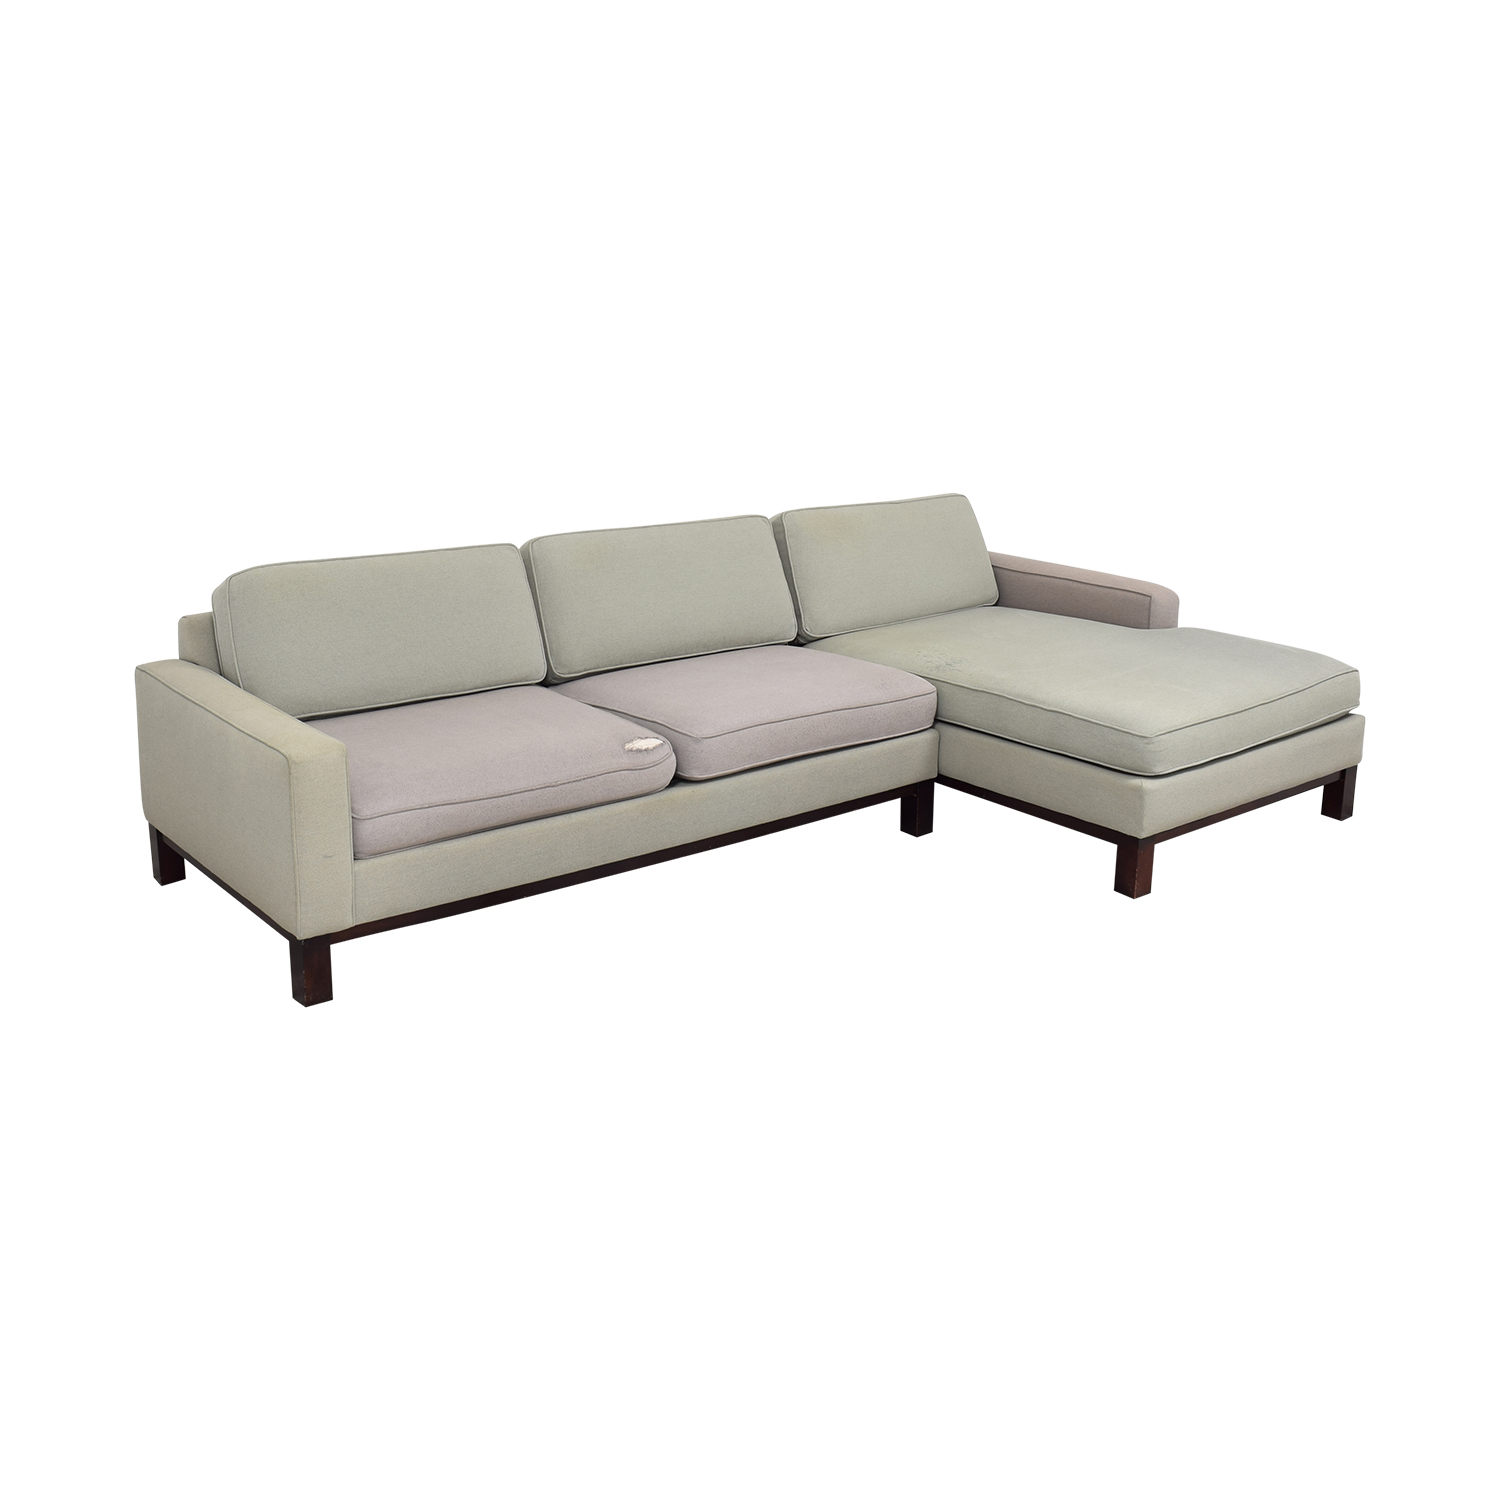 Room & Board Room & Board Chaise Sectional Sofa used